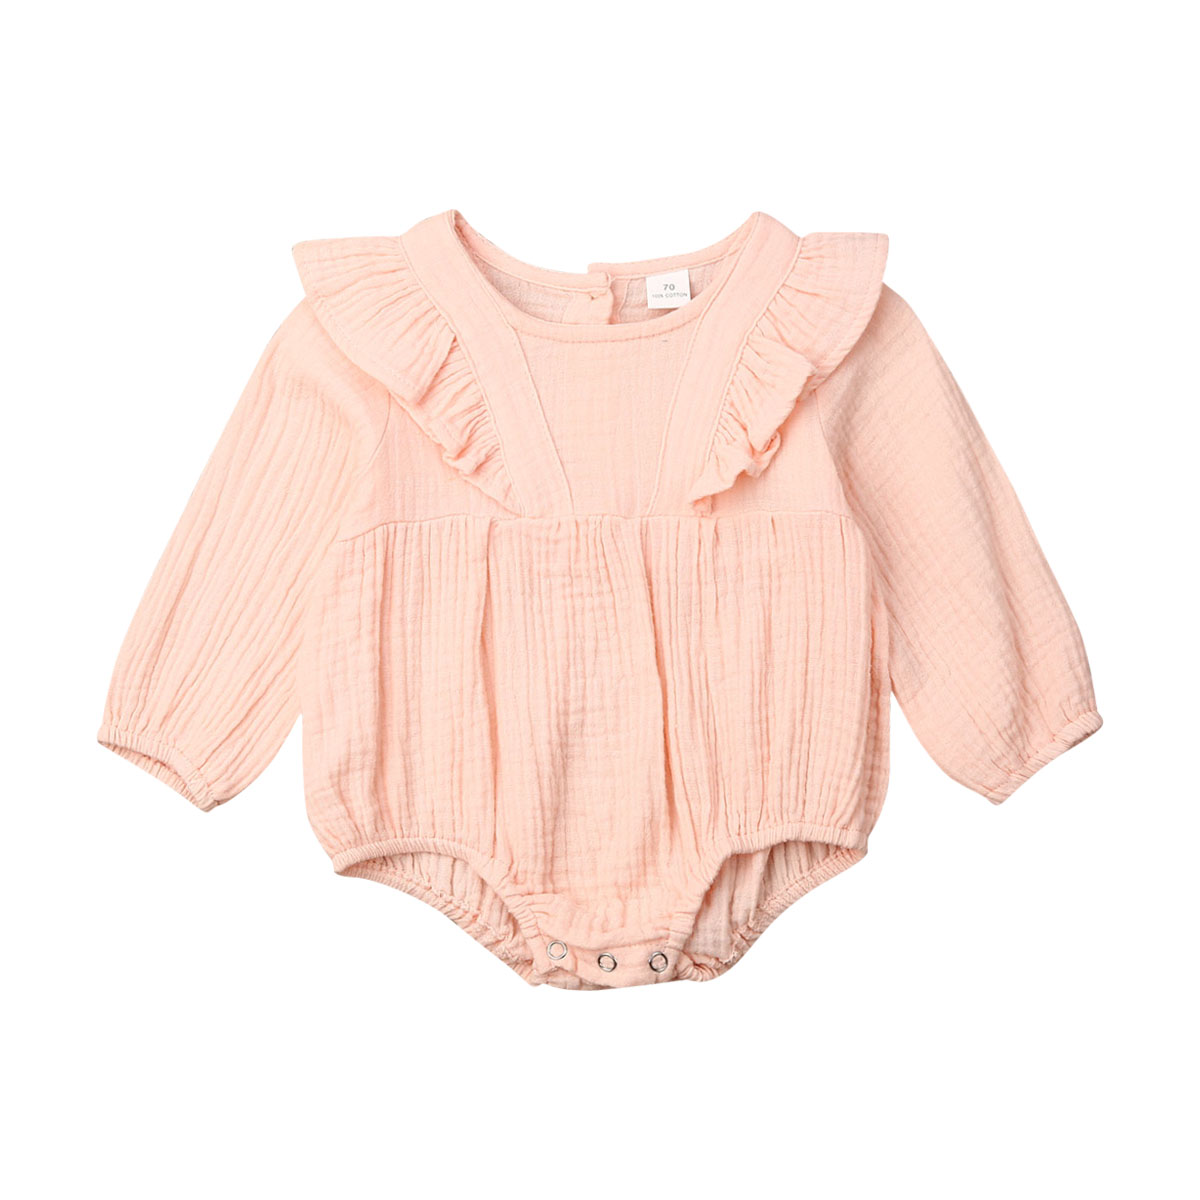 Cute Newborn Baby Girl Long Sleeve Solid Color Cotton Bodysuit Jumpsuit Playsuit Outfits Baby Clothes